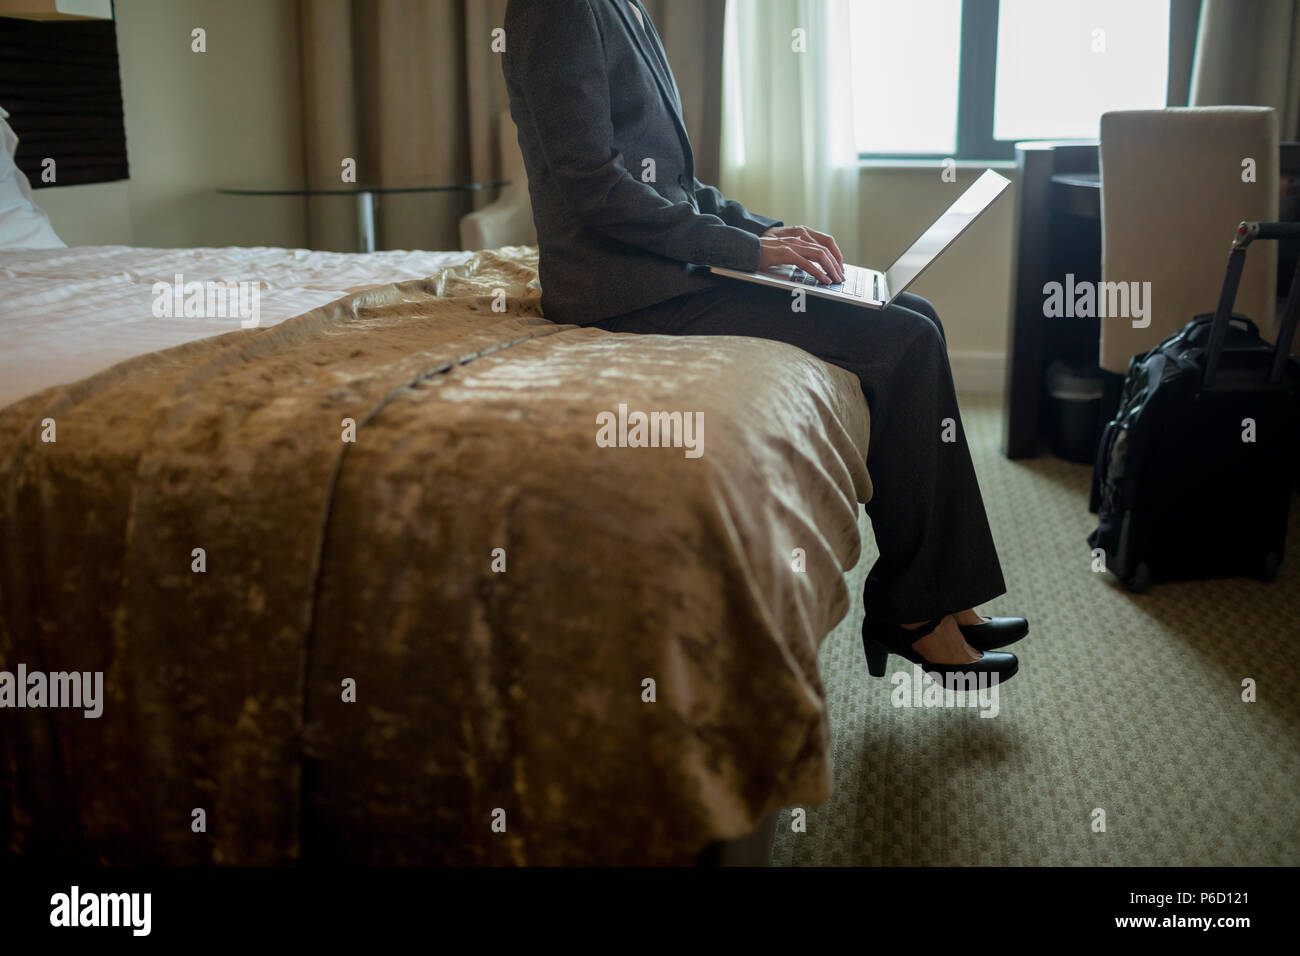 Businesswoman using laptop on bed - Stock Image